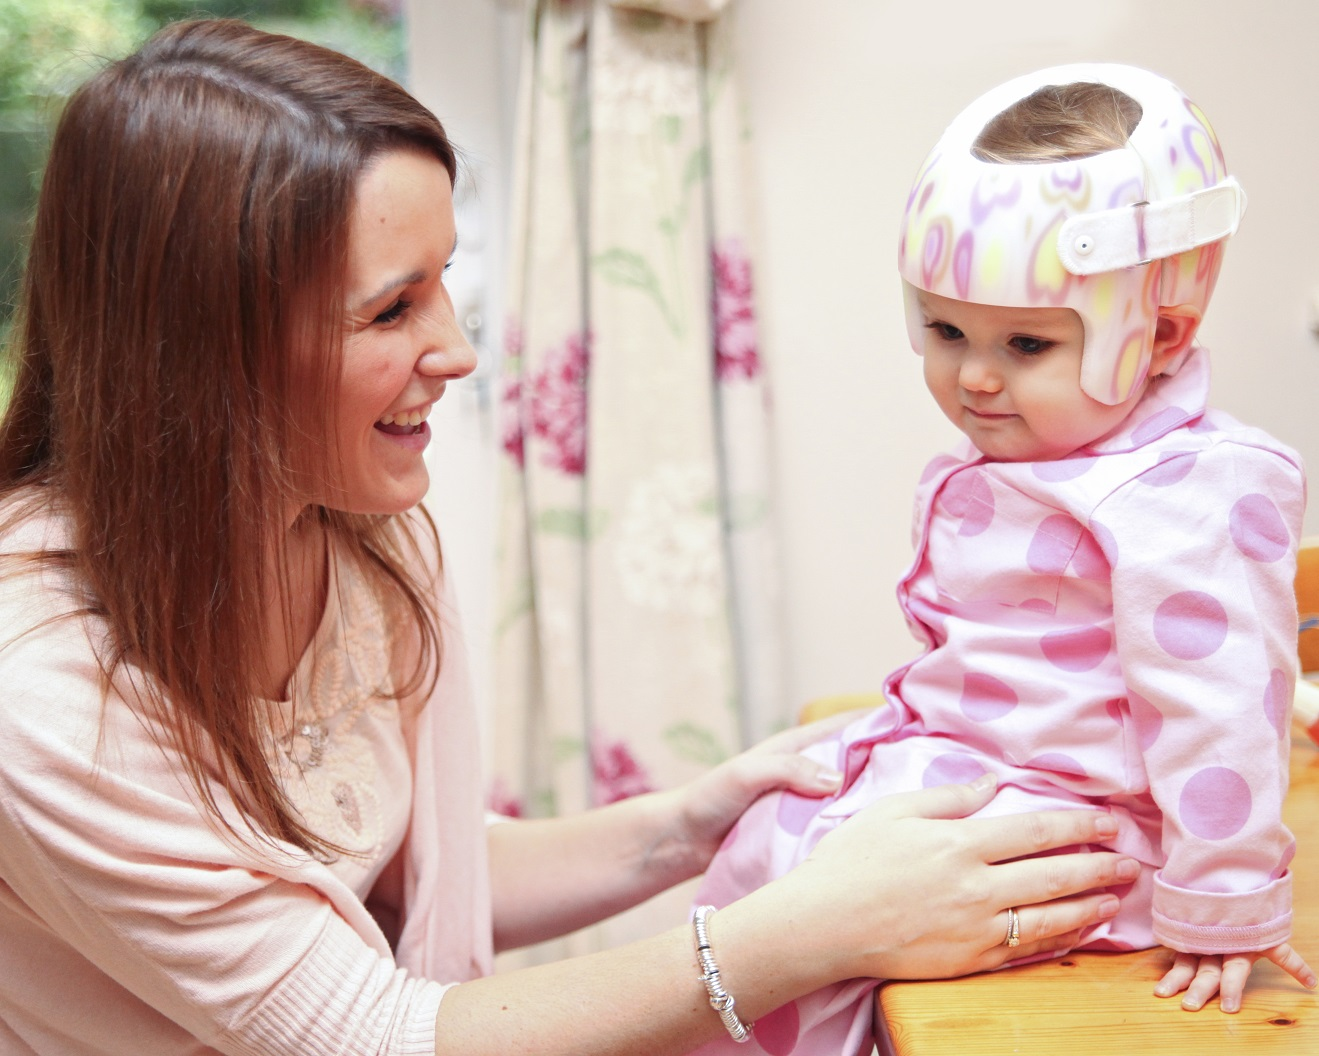 Plagiocephaly treatment